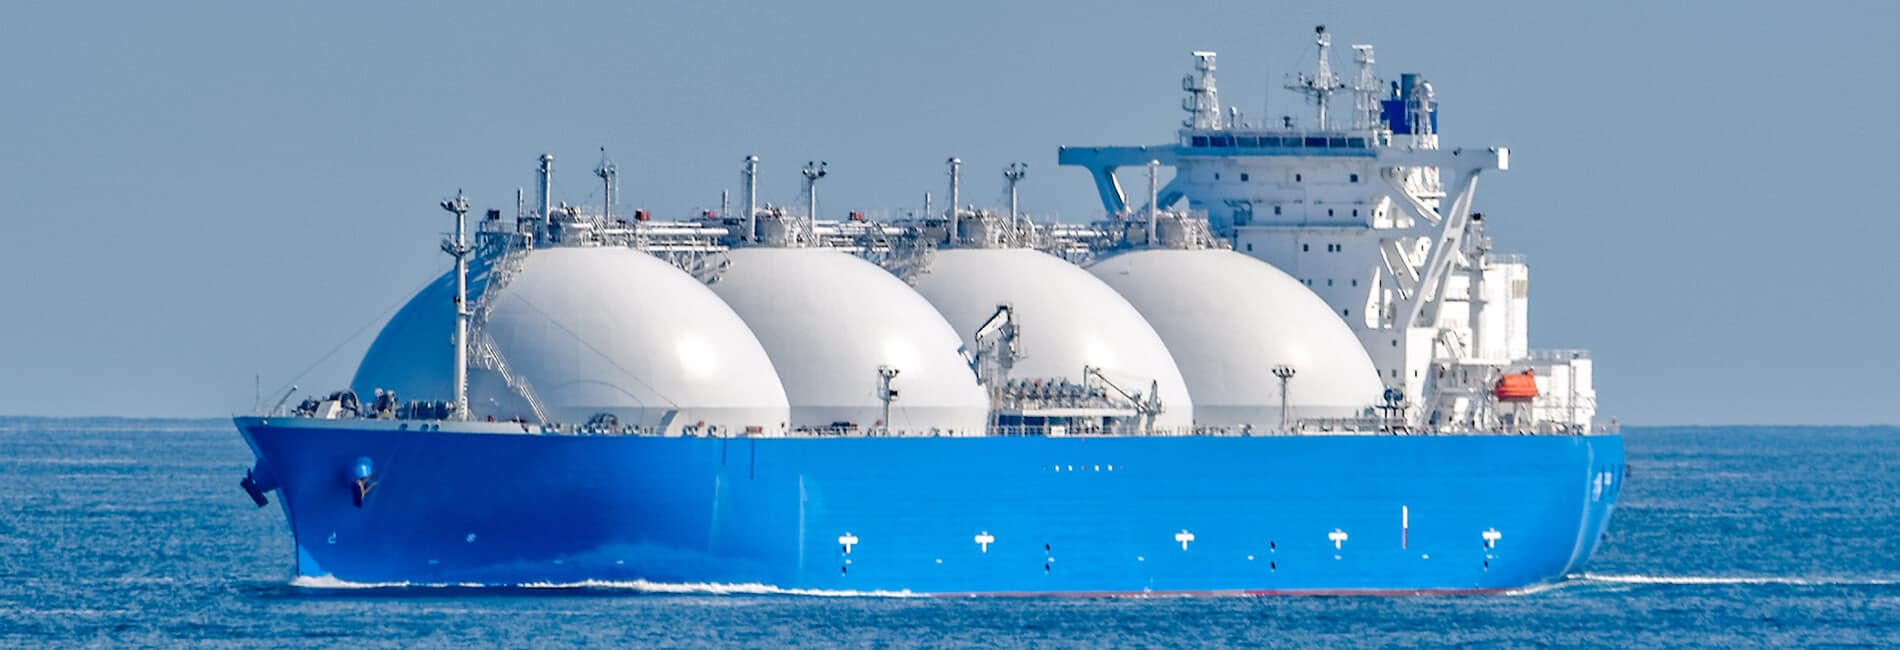 A perfect example of an well kempt LNG Ship (Liquid Natural Gas) in mid-ocean